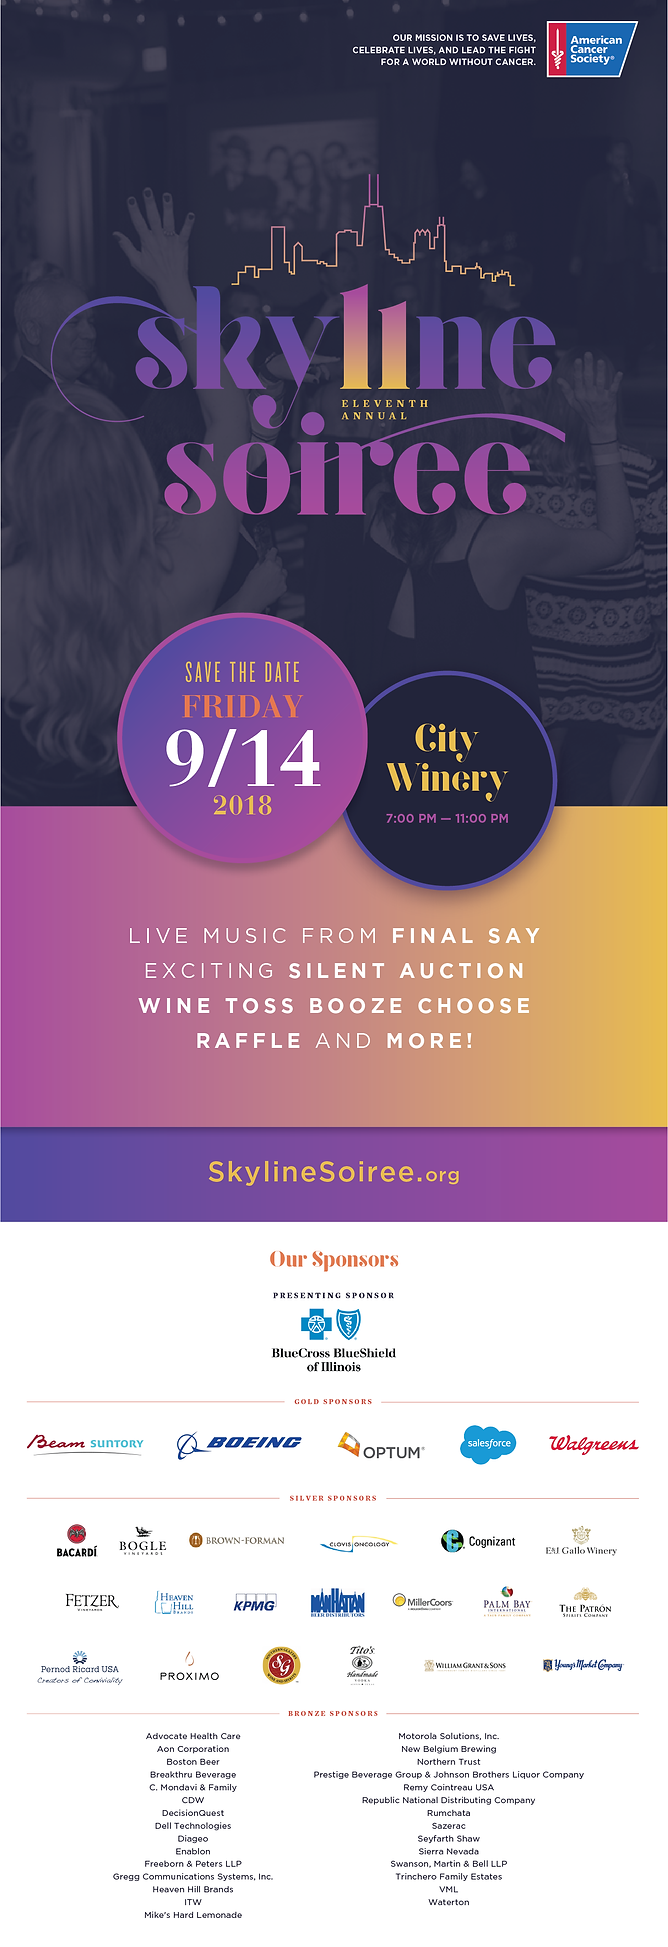 Skyline Soiree - Invitation 2018 Reivsed